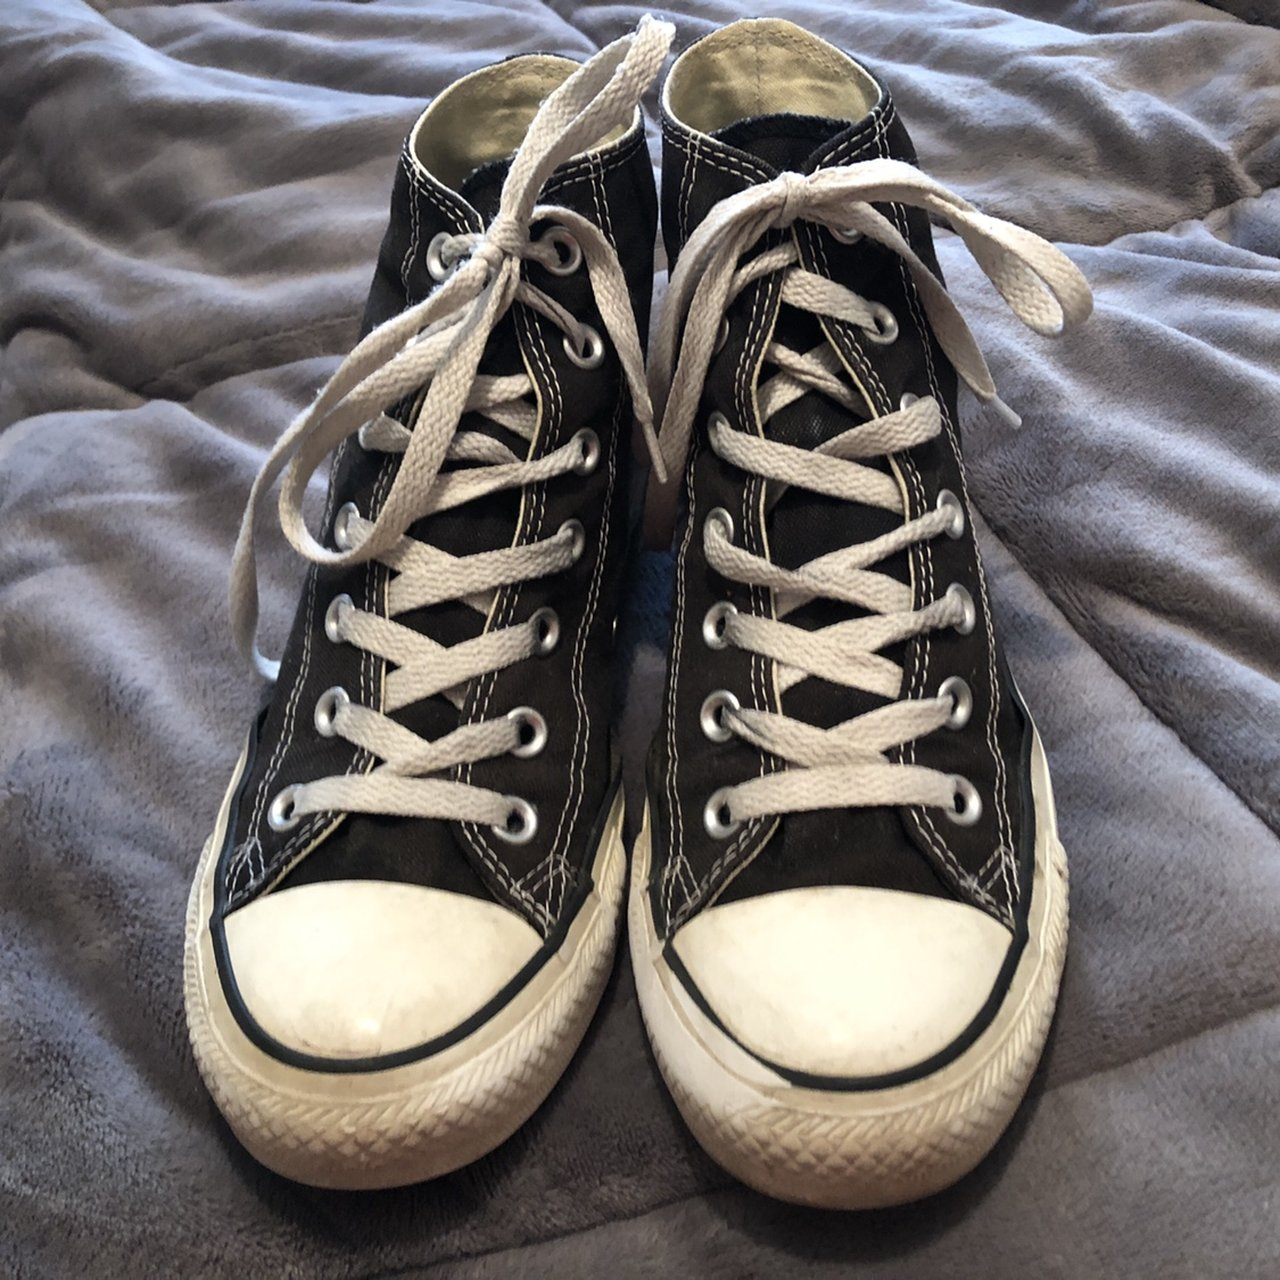 edc3508117b5 These converse are a little worn out but still adorable! are - Depop